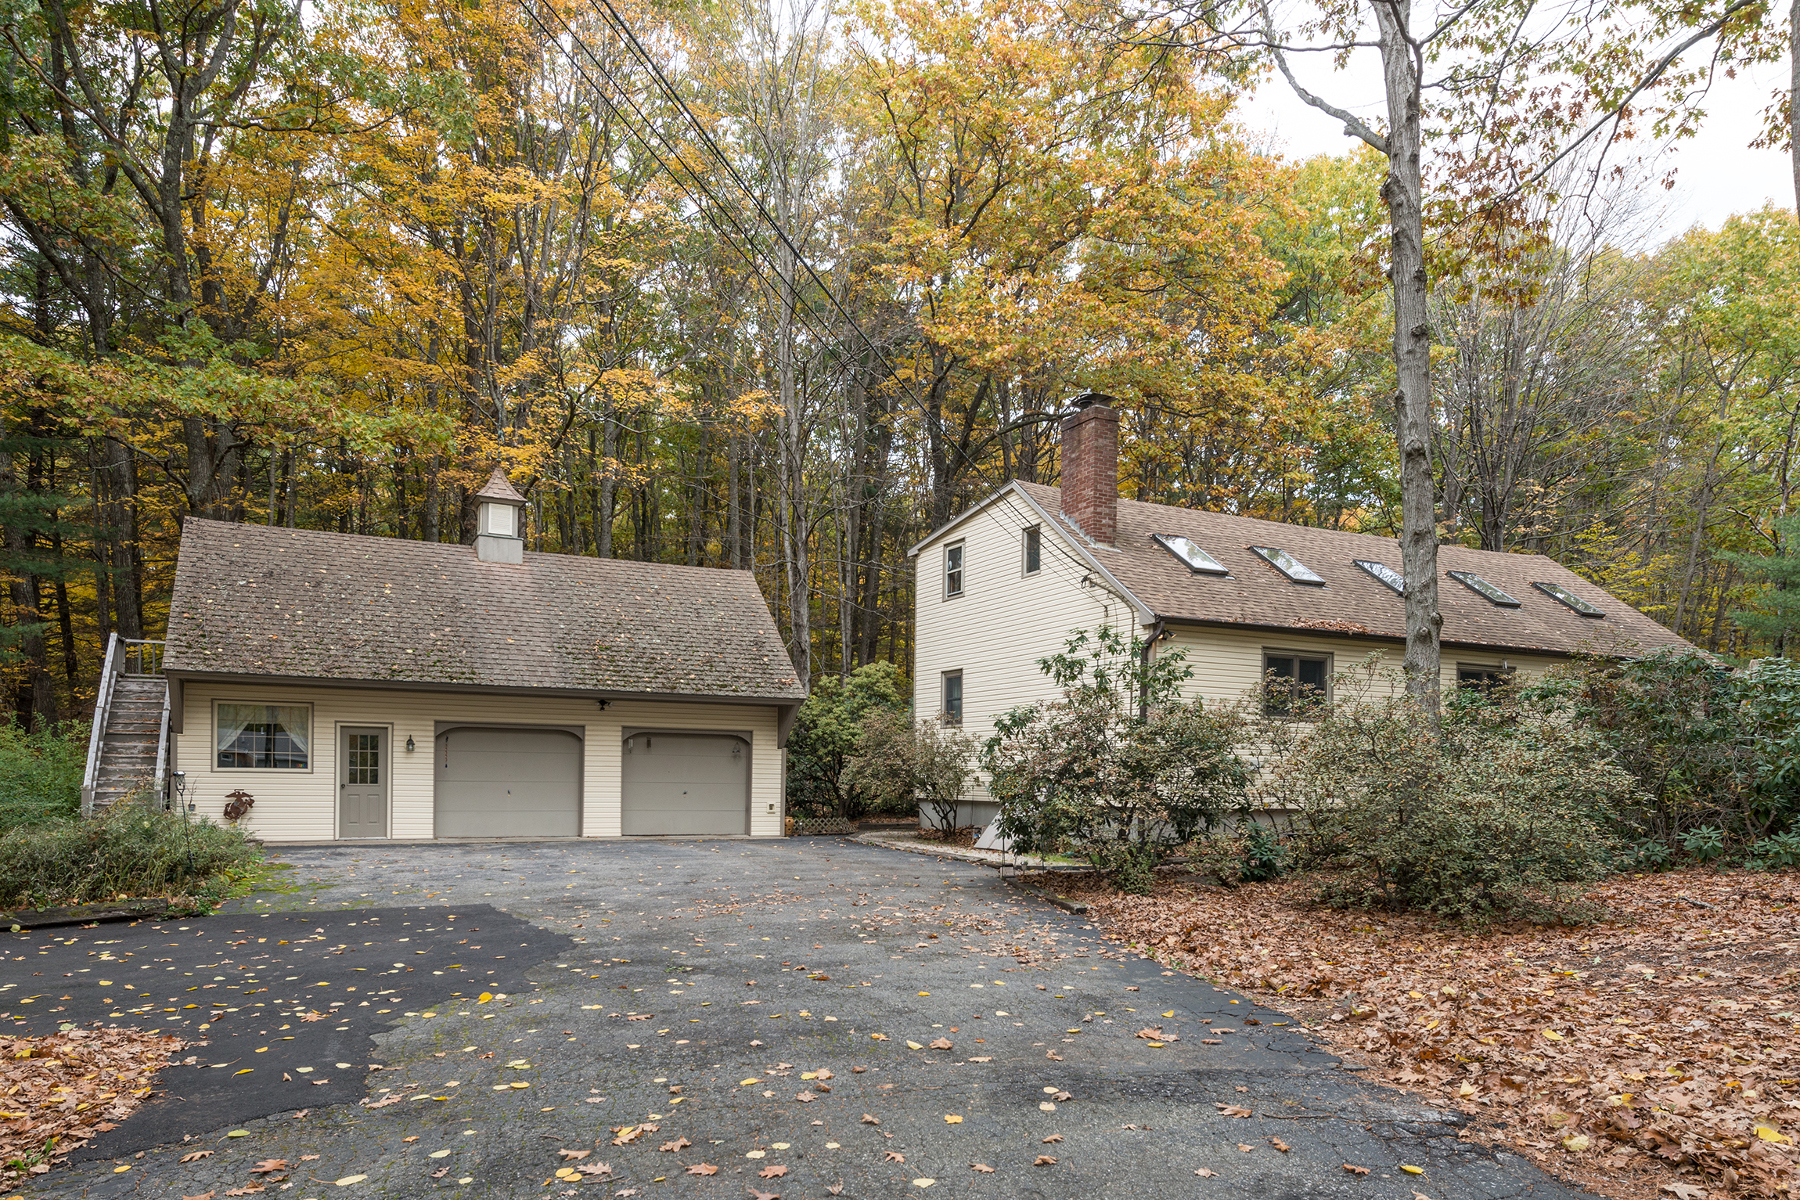 Single Family Home for Sale at Beach House near the Mountain 182 Clay Hill Road York, Maine, 03902 United States